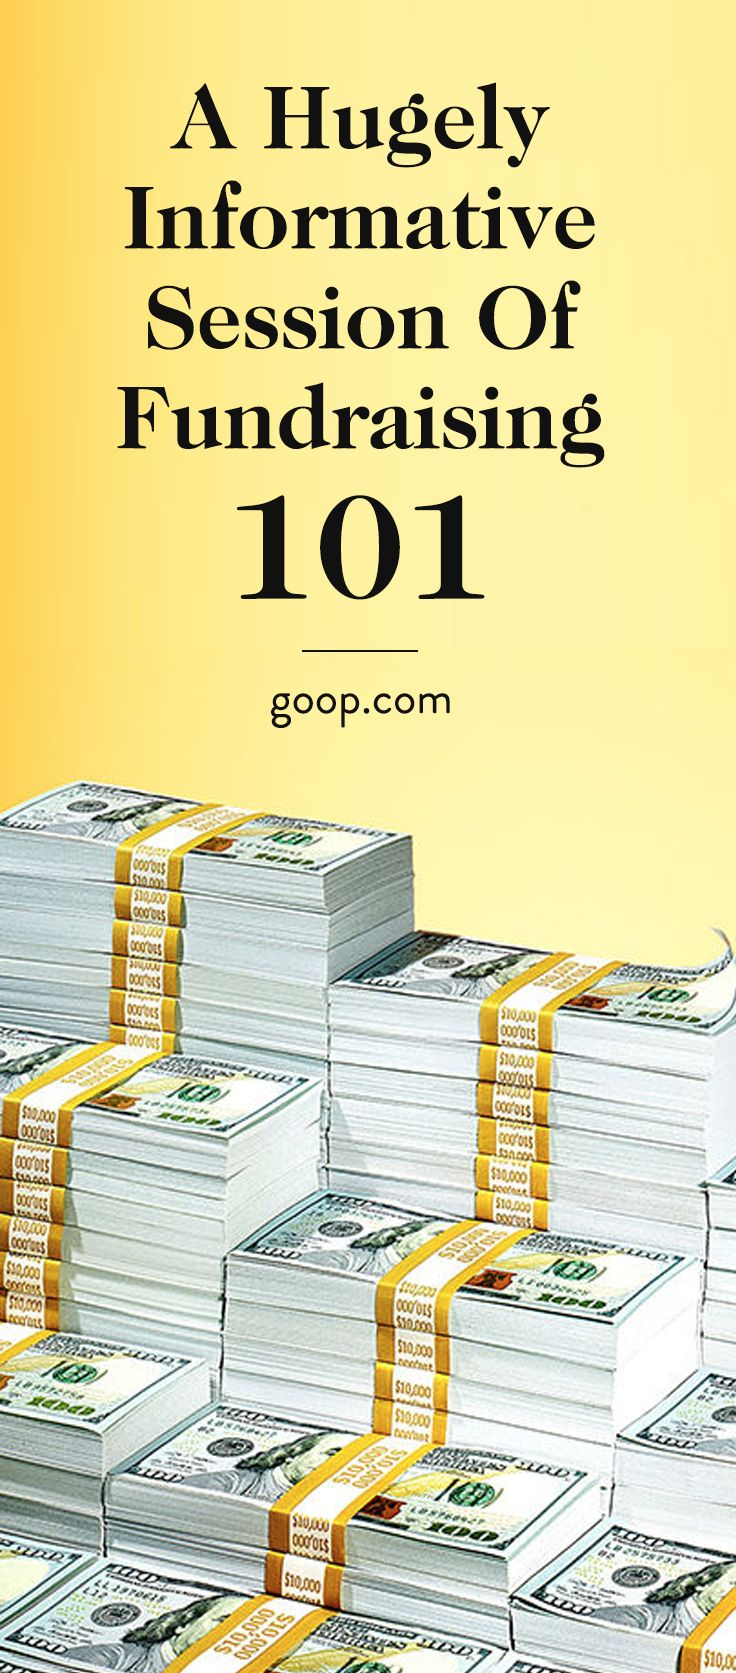 Fundraising 101: An Incredible Real Talk Guide To Fundraising,  Entrepreneurship, And Getting